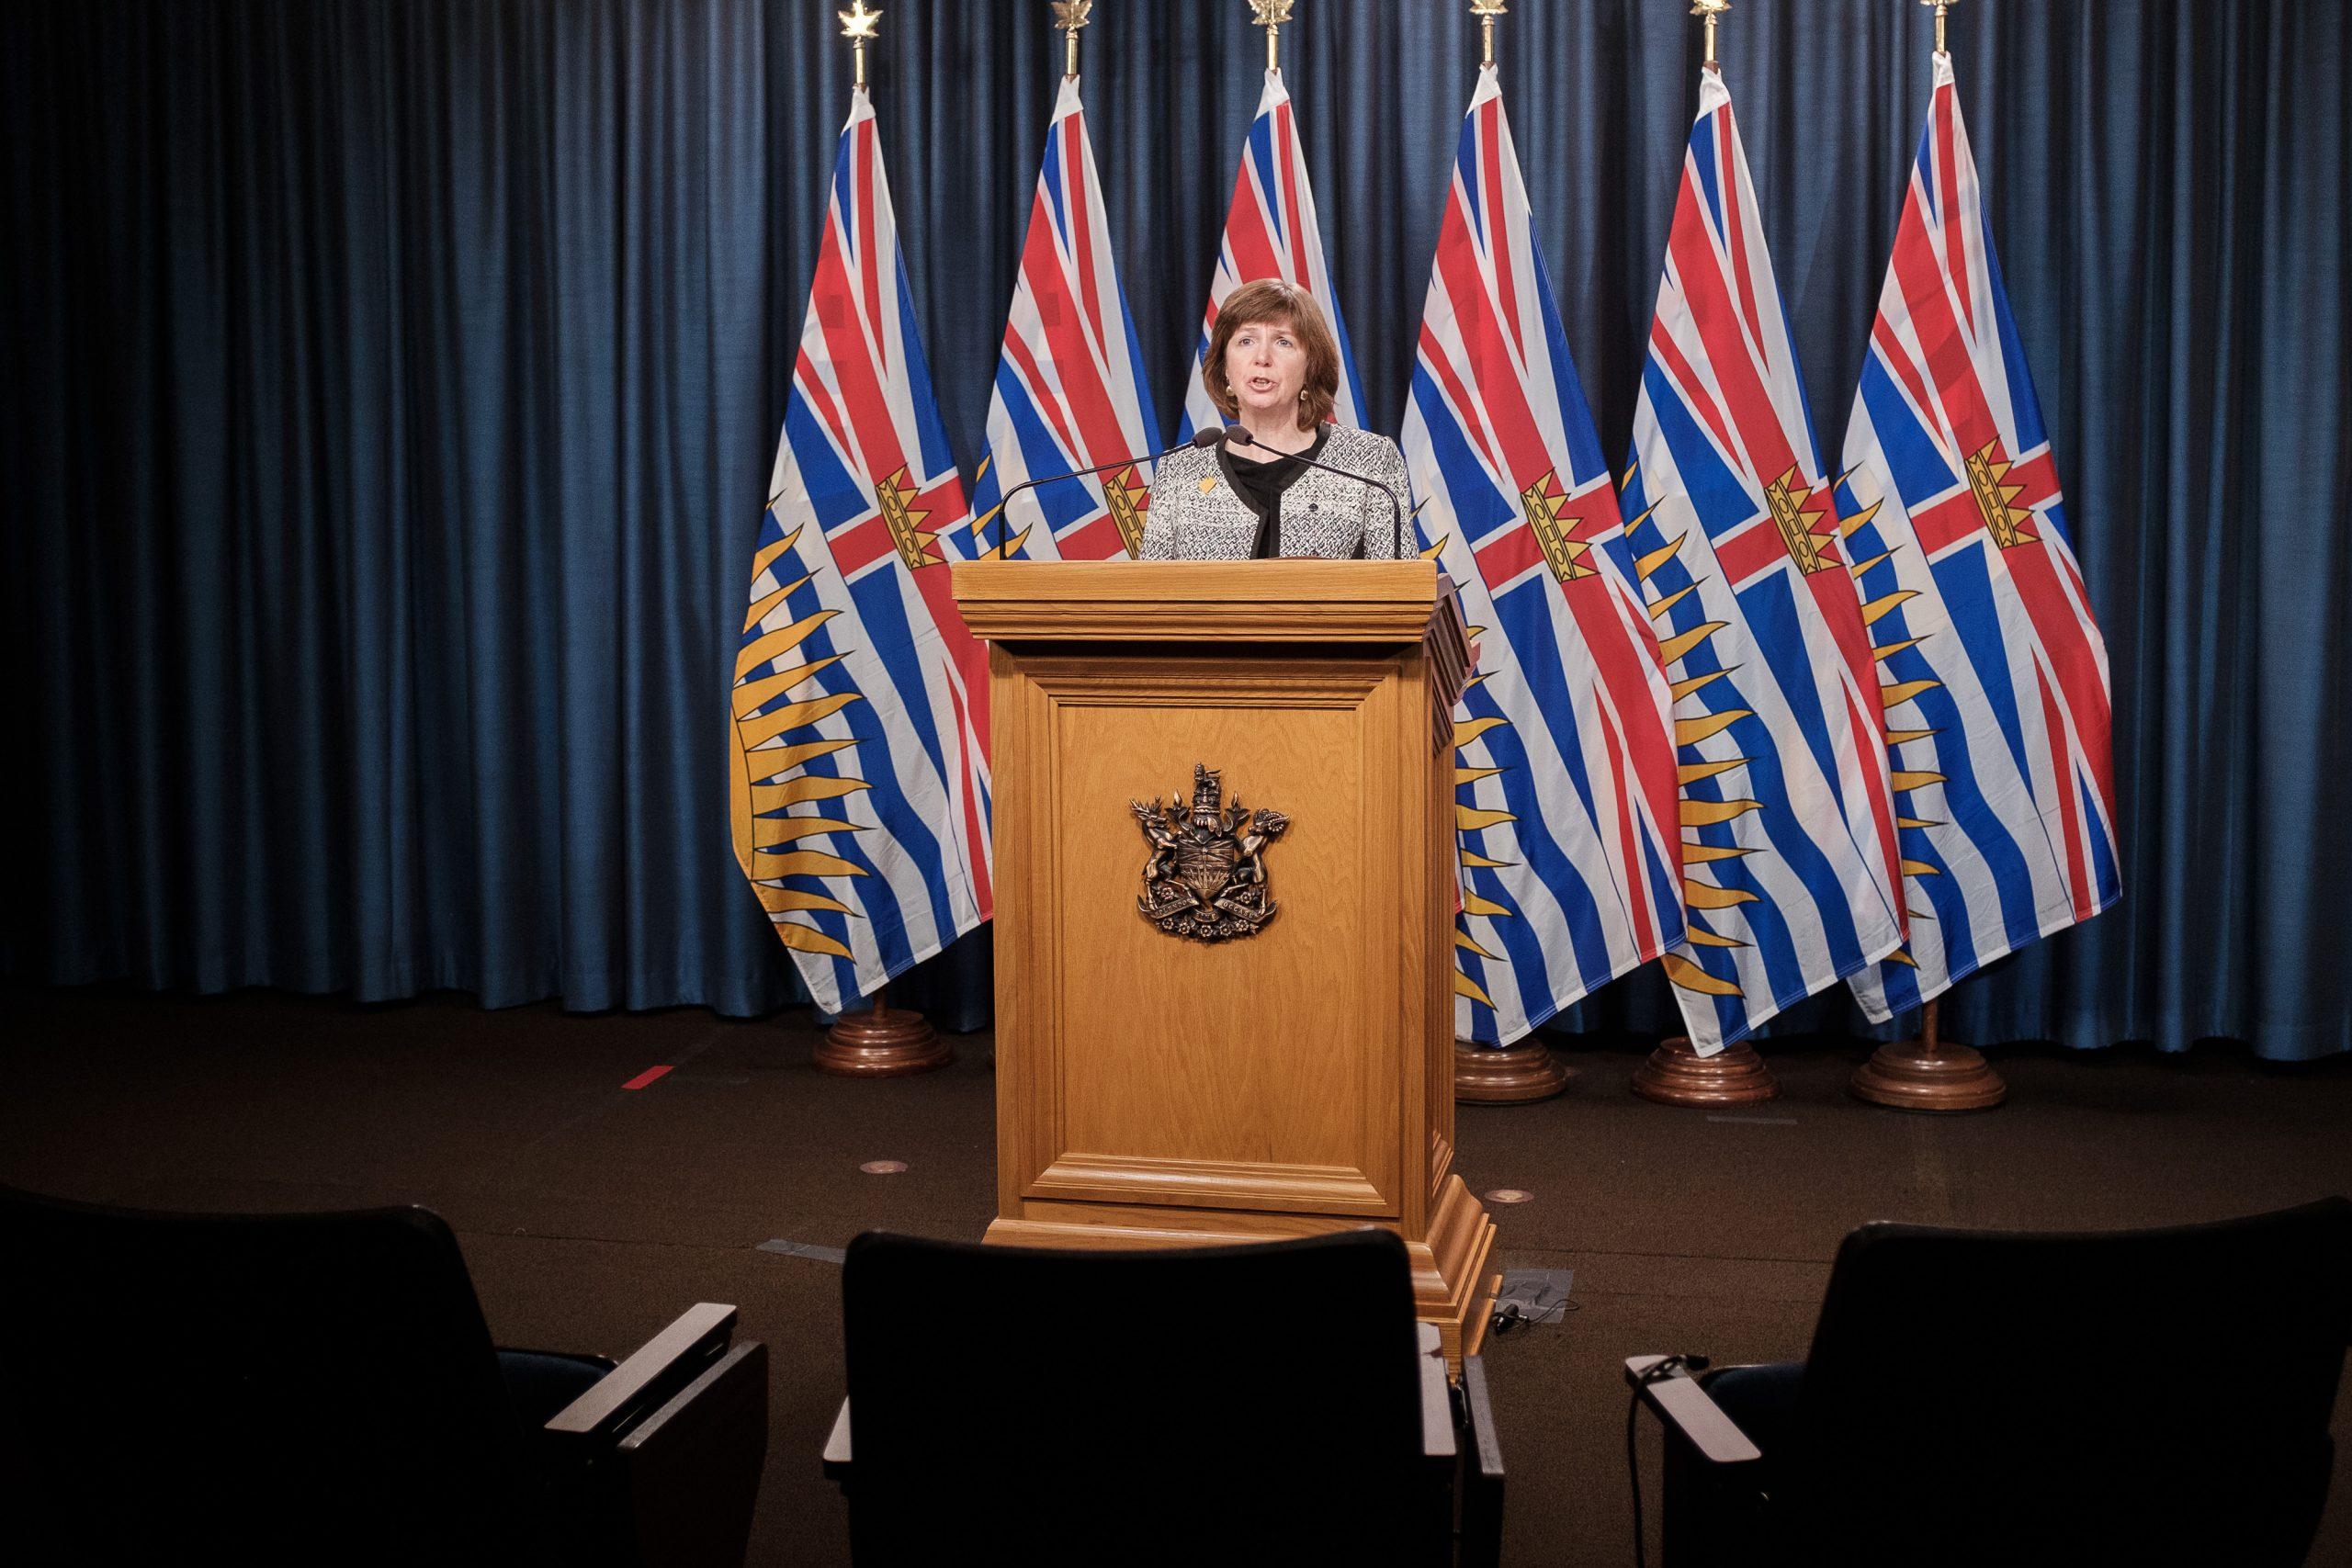 Sheila Malcolmson stands at a wooden podium in front of six British Columbia flags